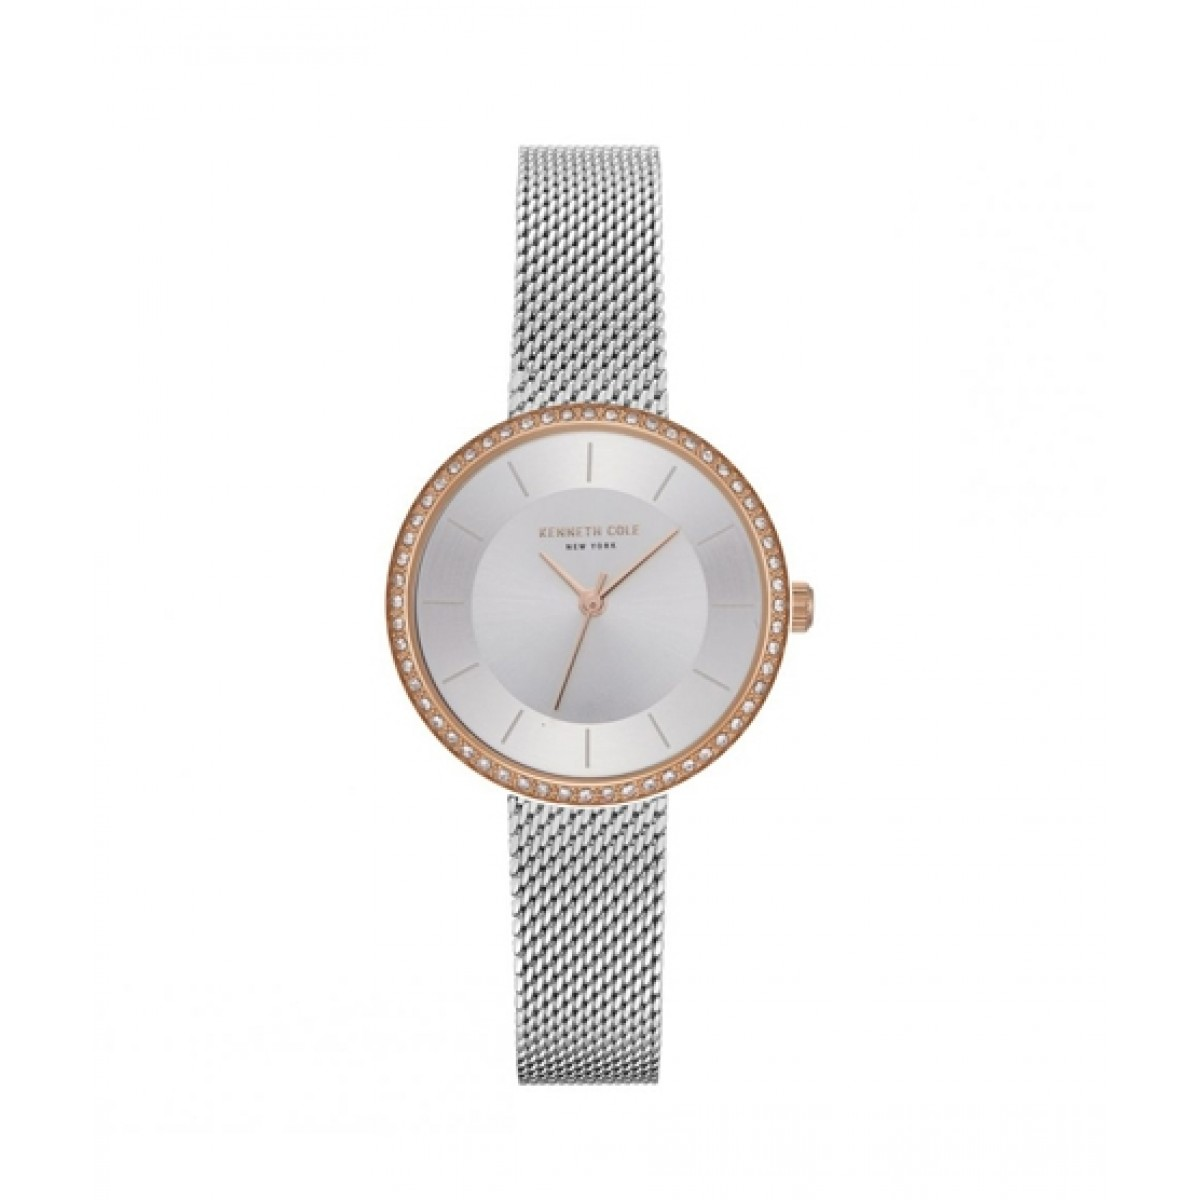 Kenneth Cole New York Analog Women's Watch Sliver (KC50198001)